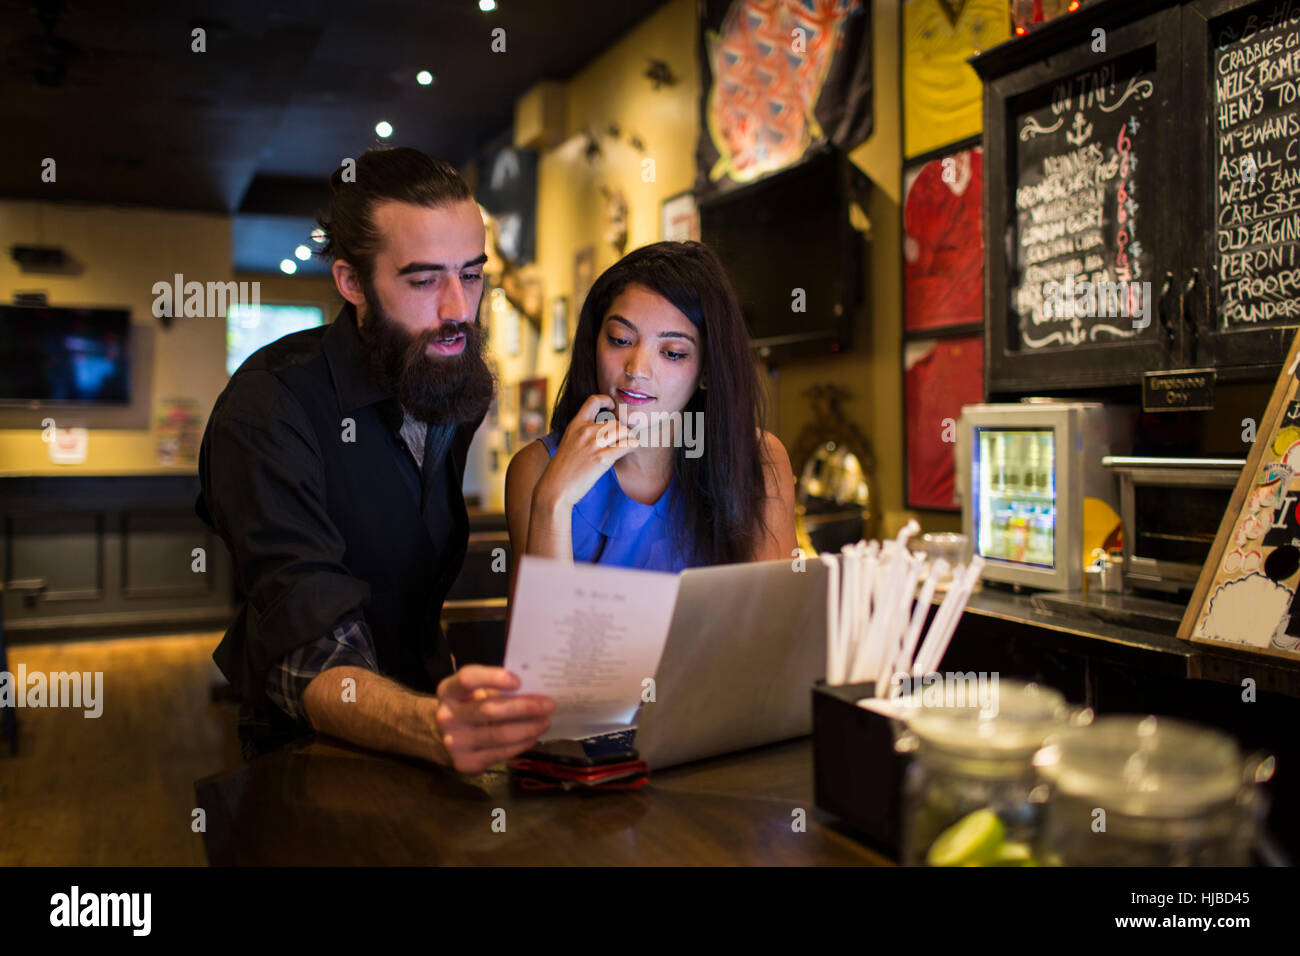 Young couple reading menu at public house table Stock Photo